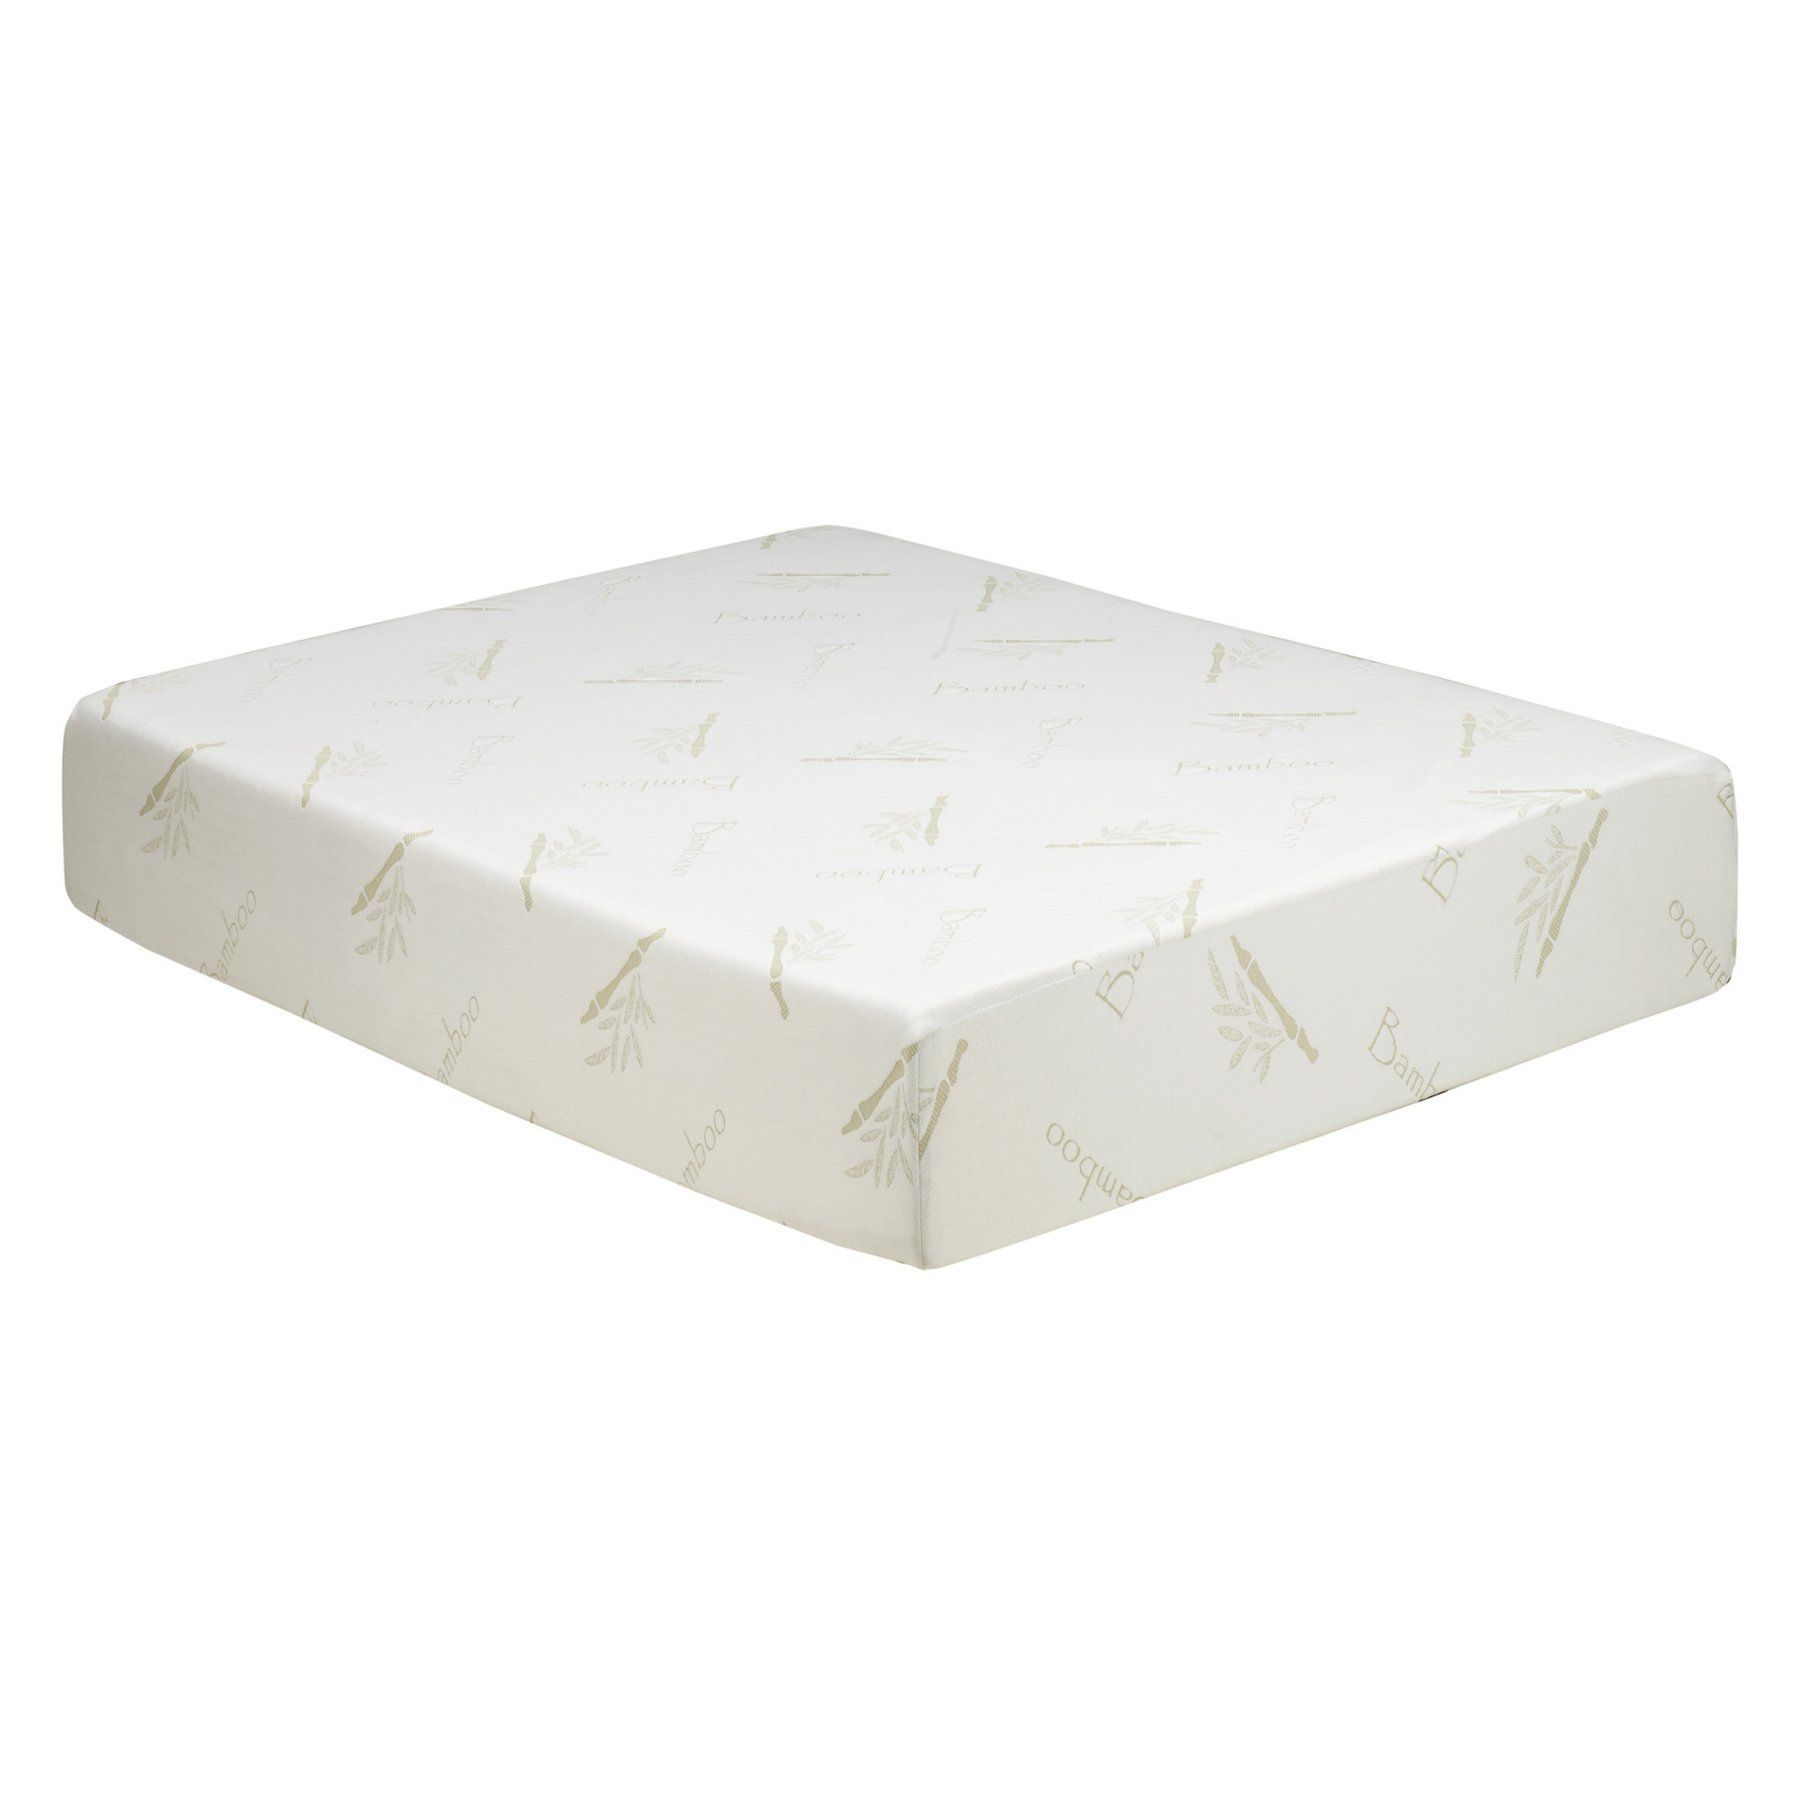 Latex Foam Mattress Pure Posture Latex And Memory Foam Mattress Imnpurp950tw